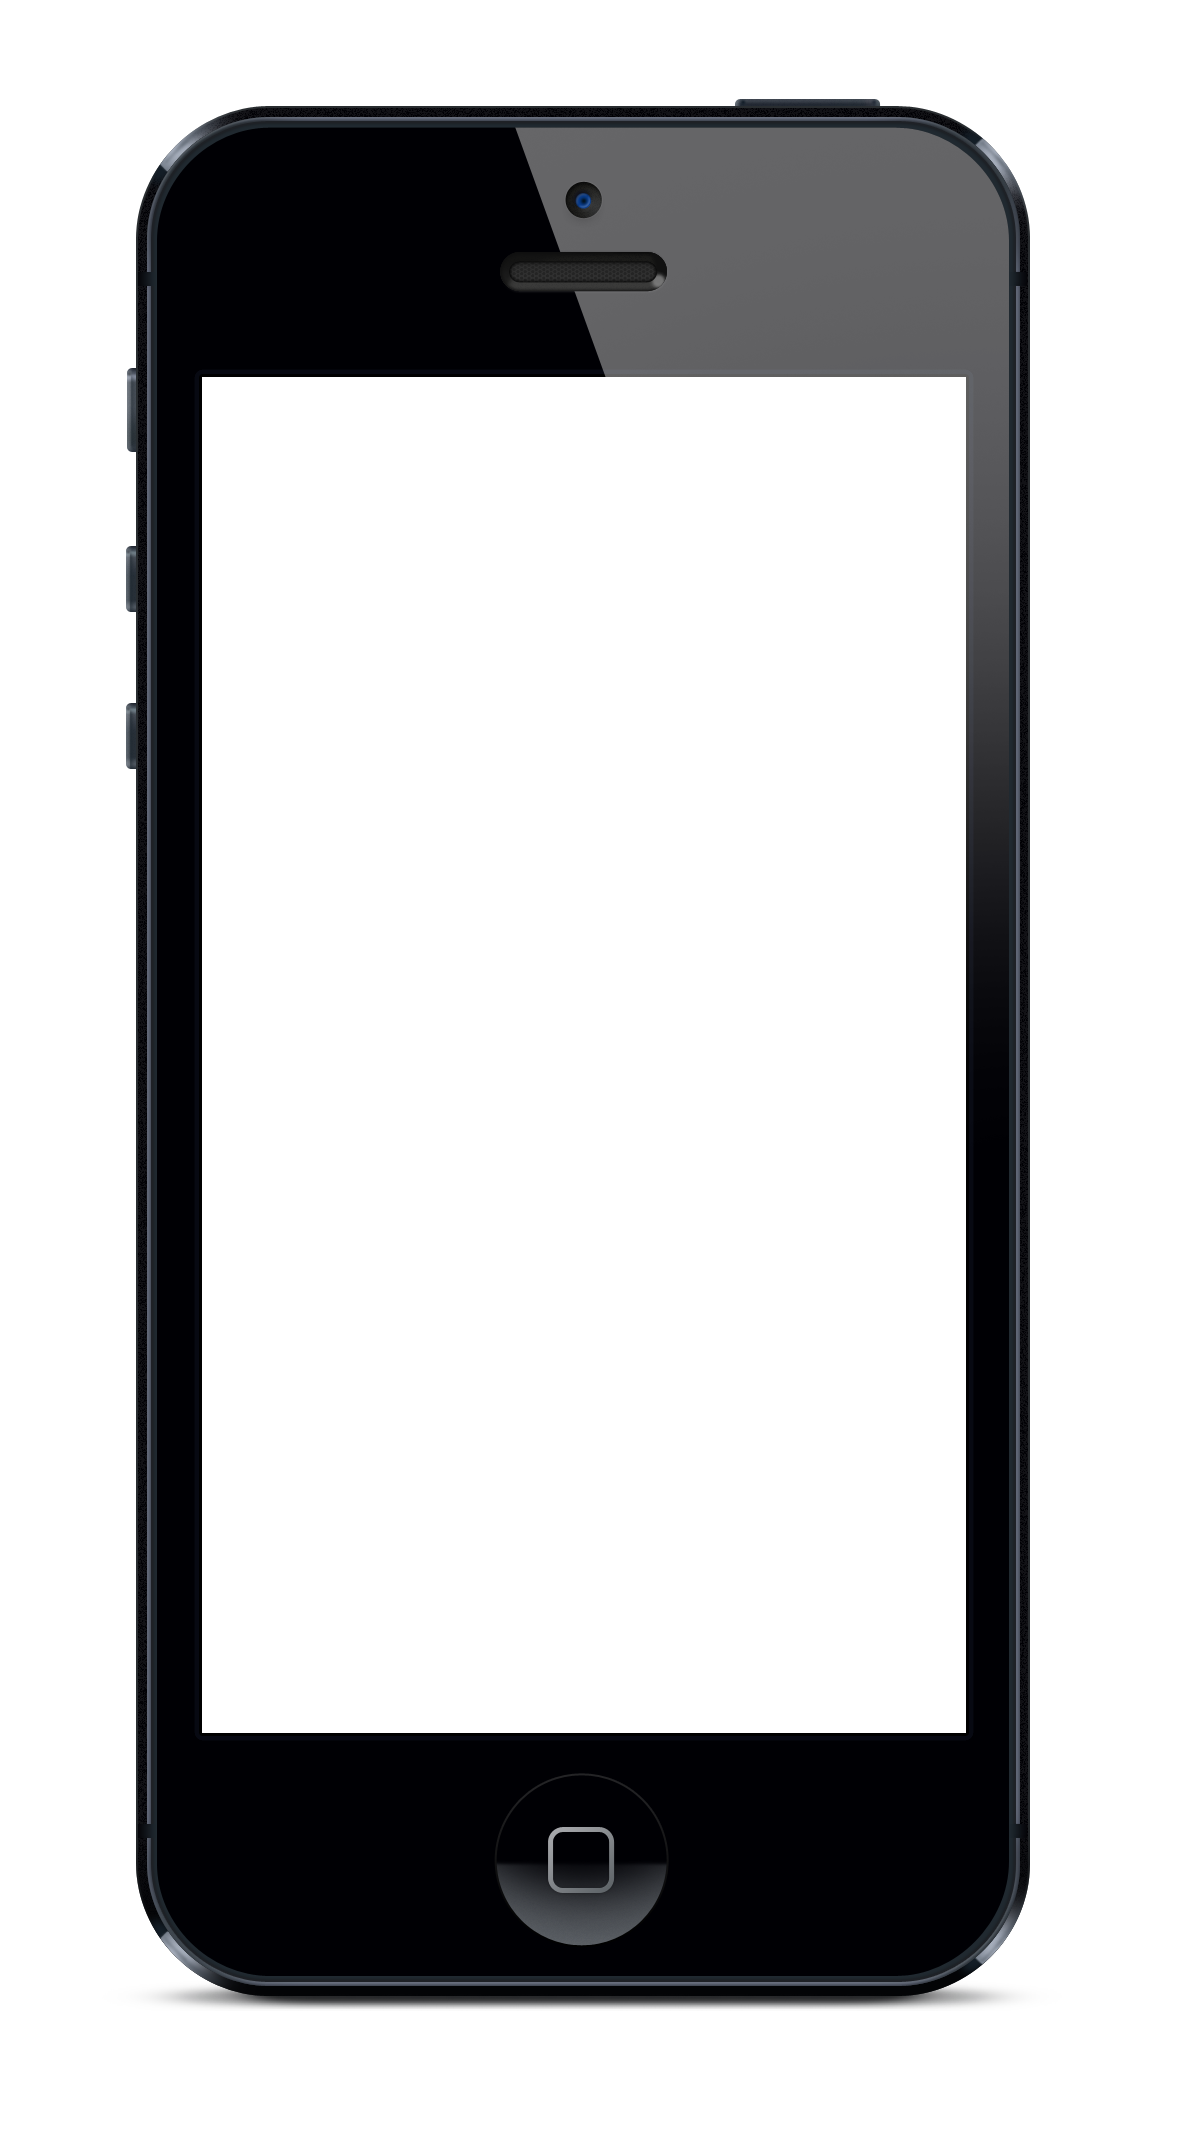 iPhone PNG